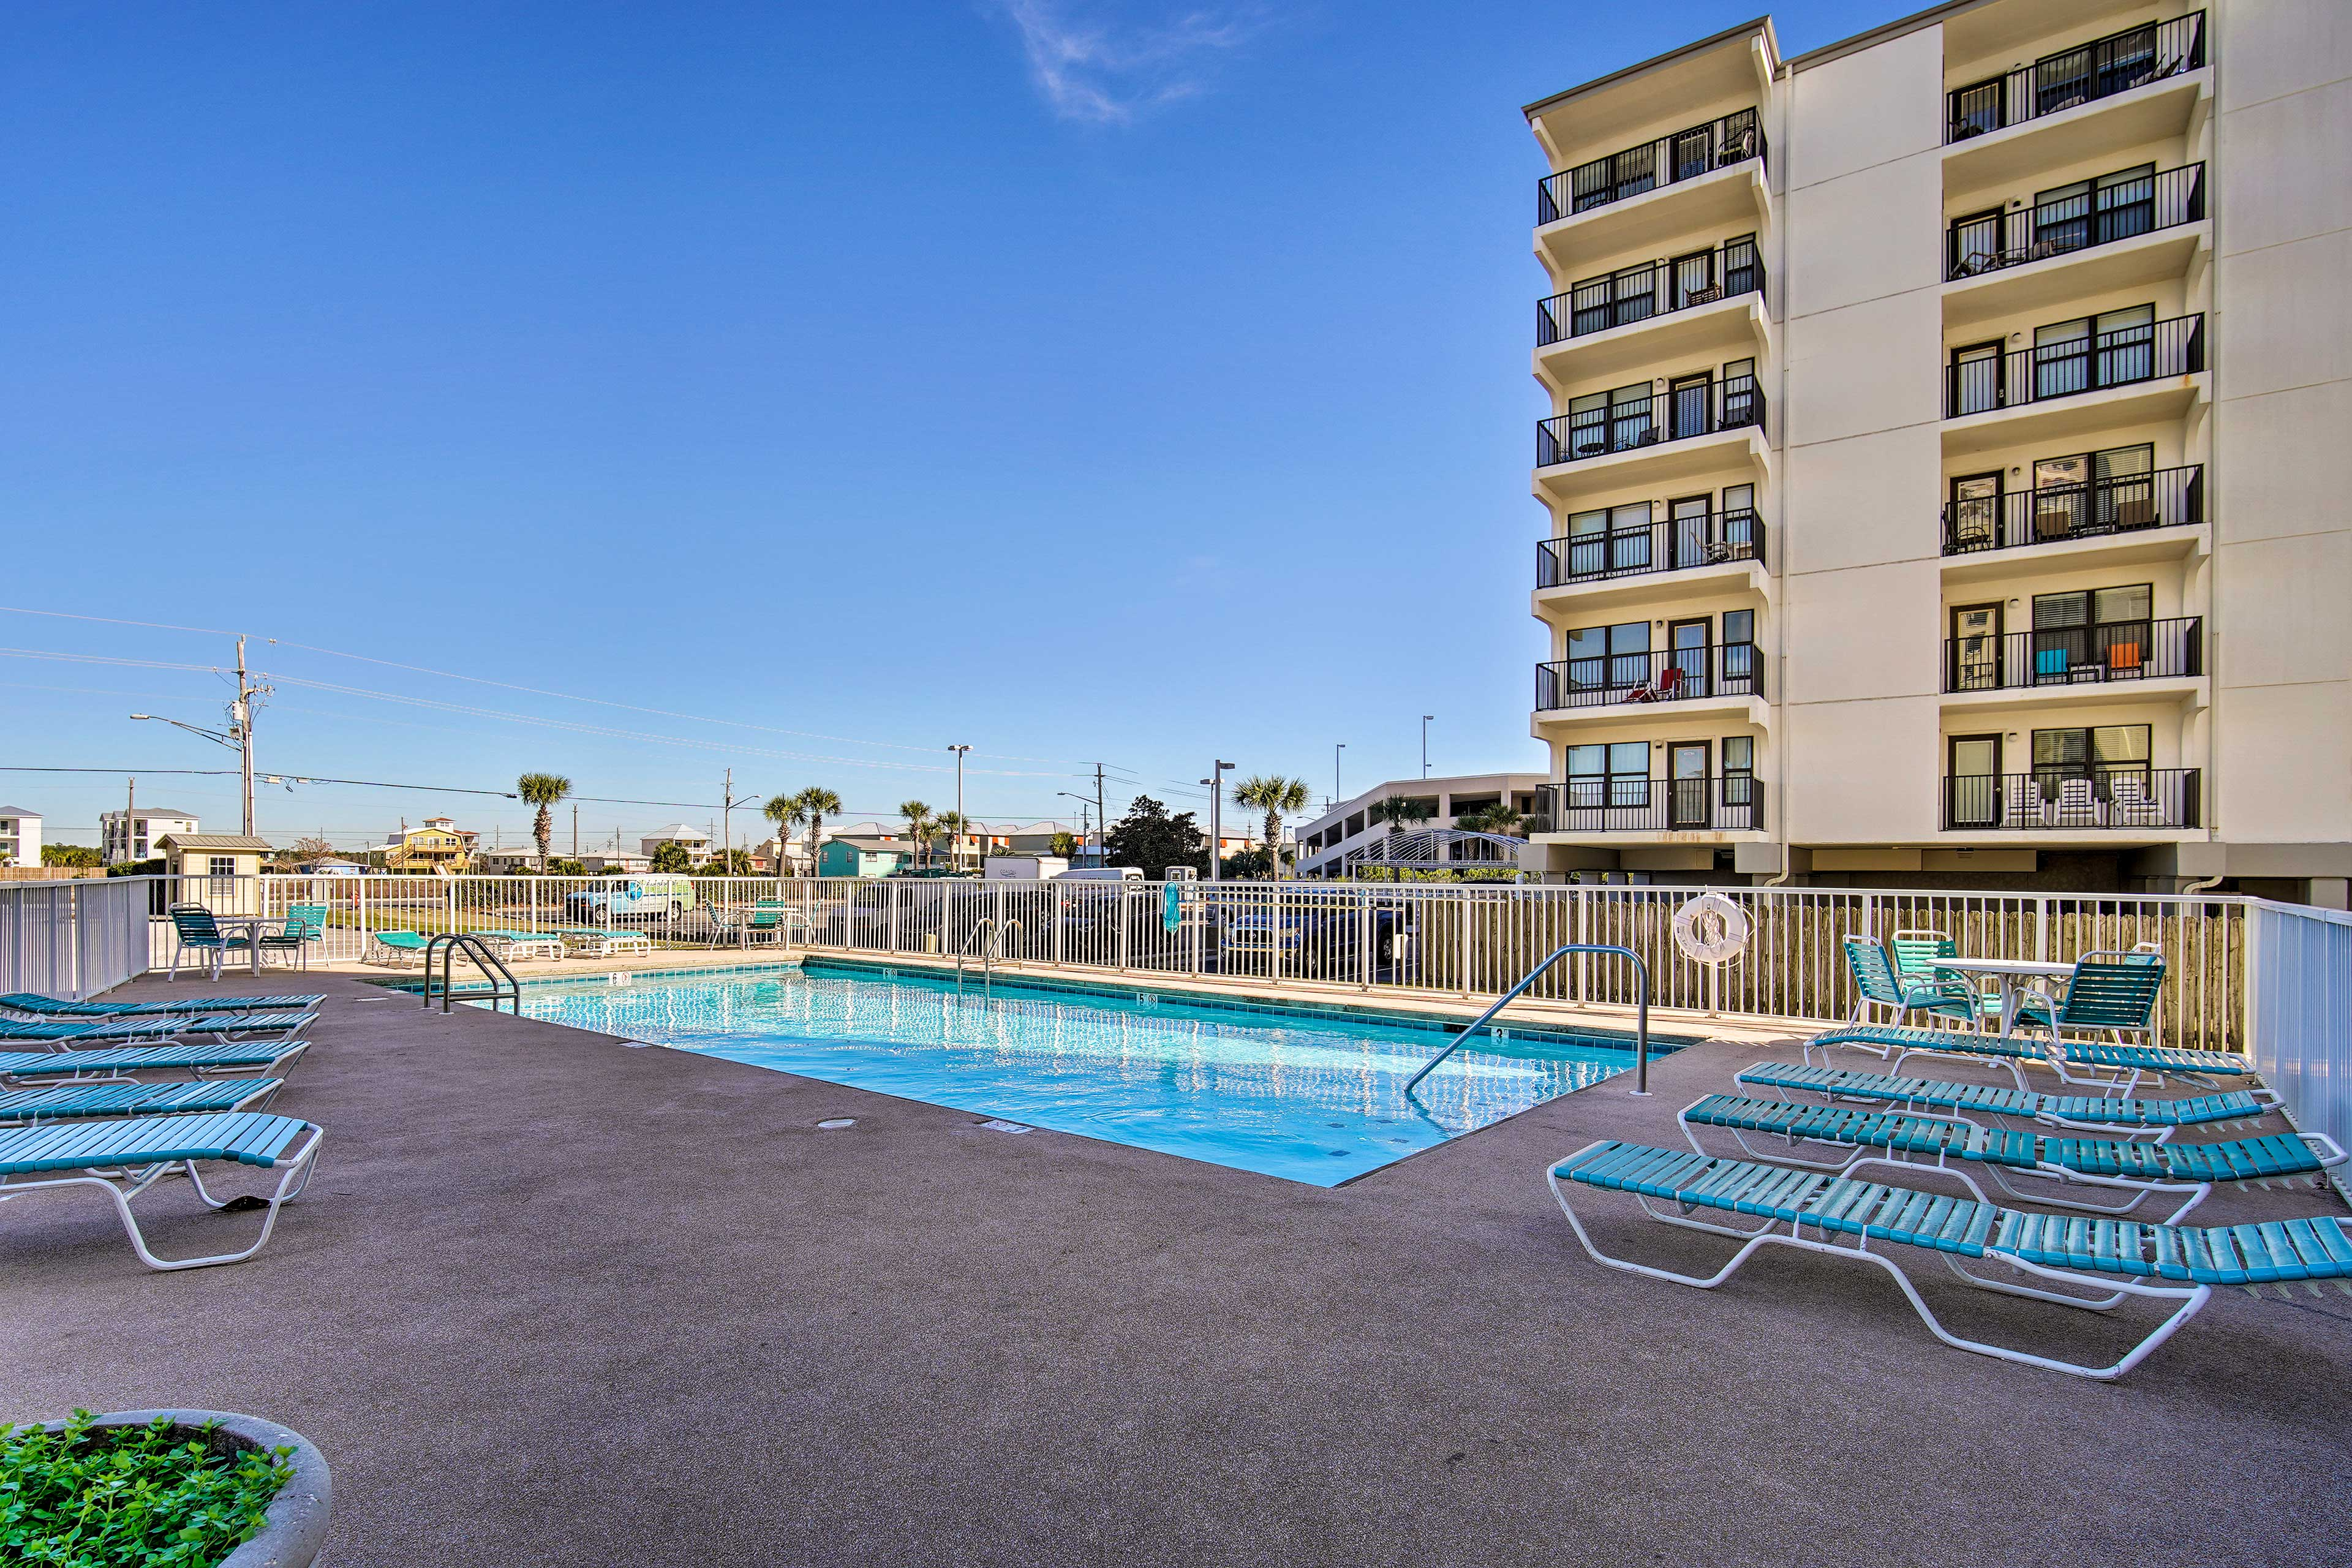 Head down to the pool for some sunshine & relaxation.